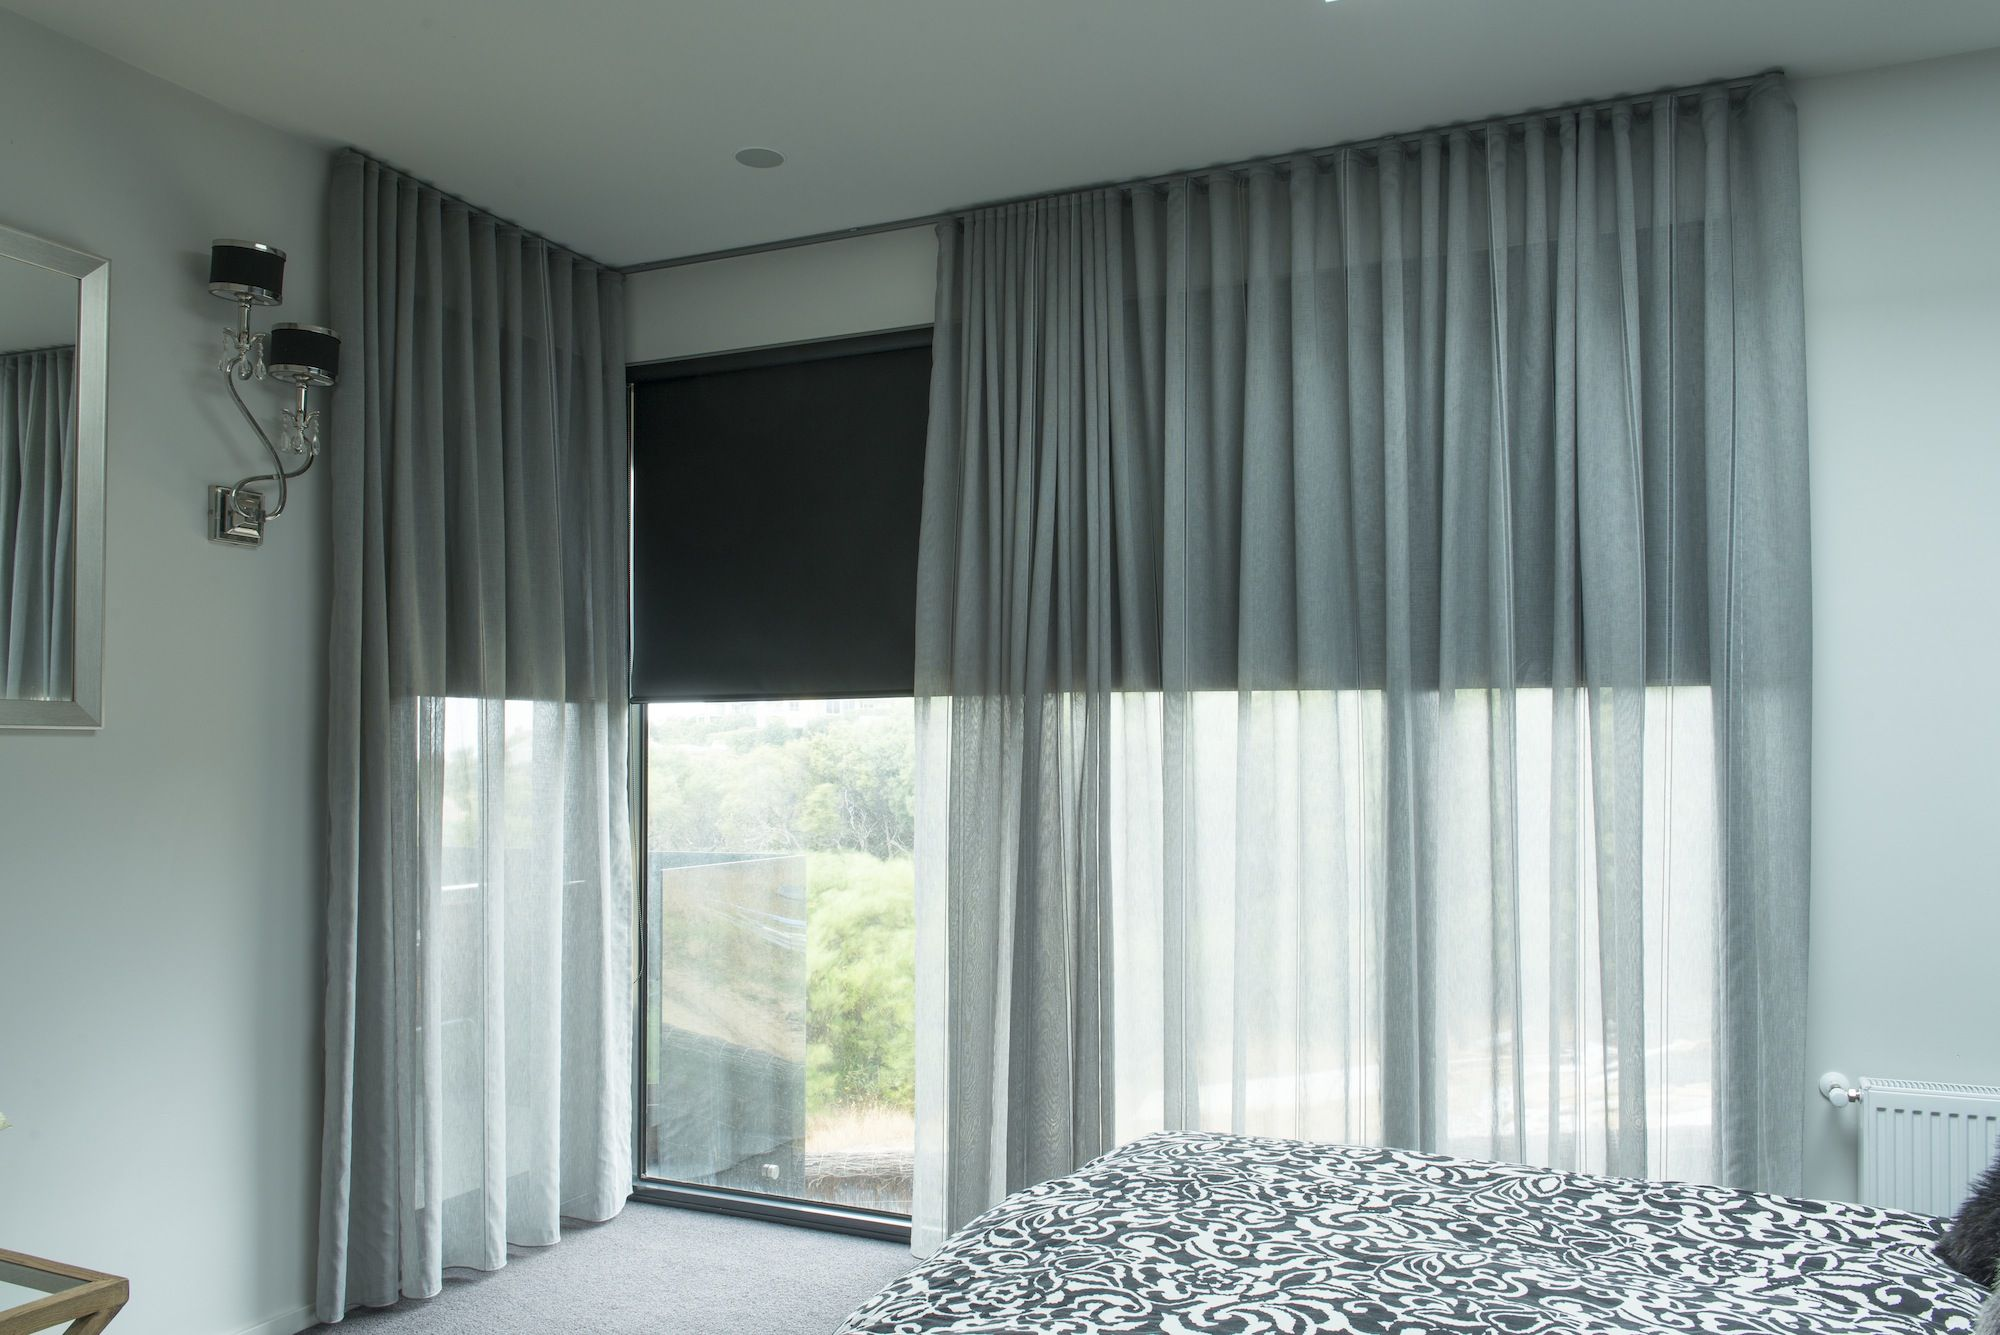 Blinds and curtains combination bedroom - Black Roller Blinds Behind Sheer Voiles I The Curtains Bedroom